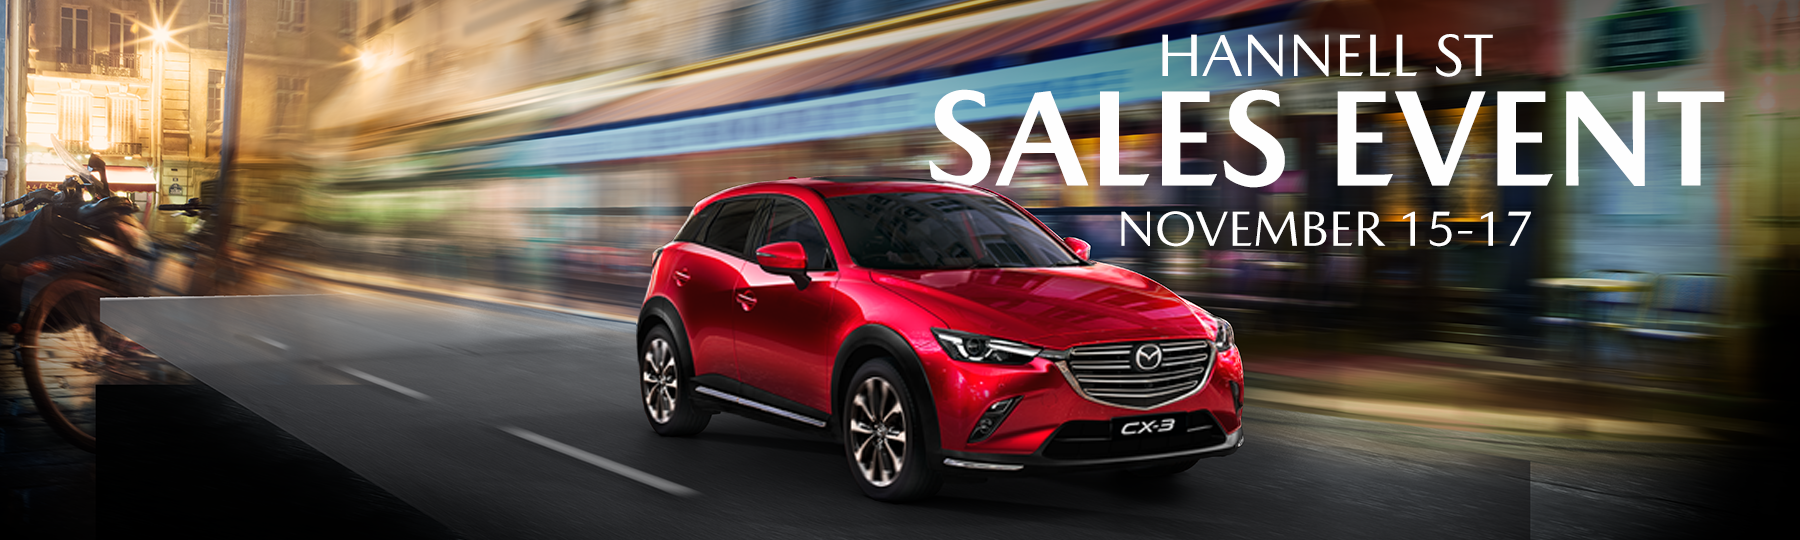 Hannell St Sales Event Newcastle Mazda